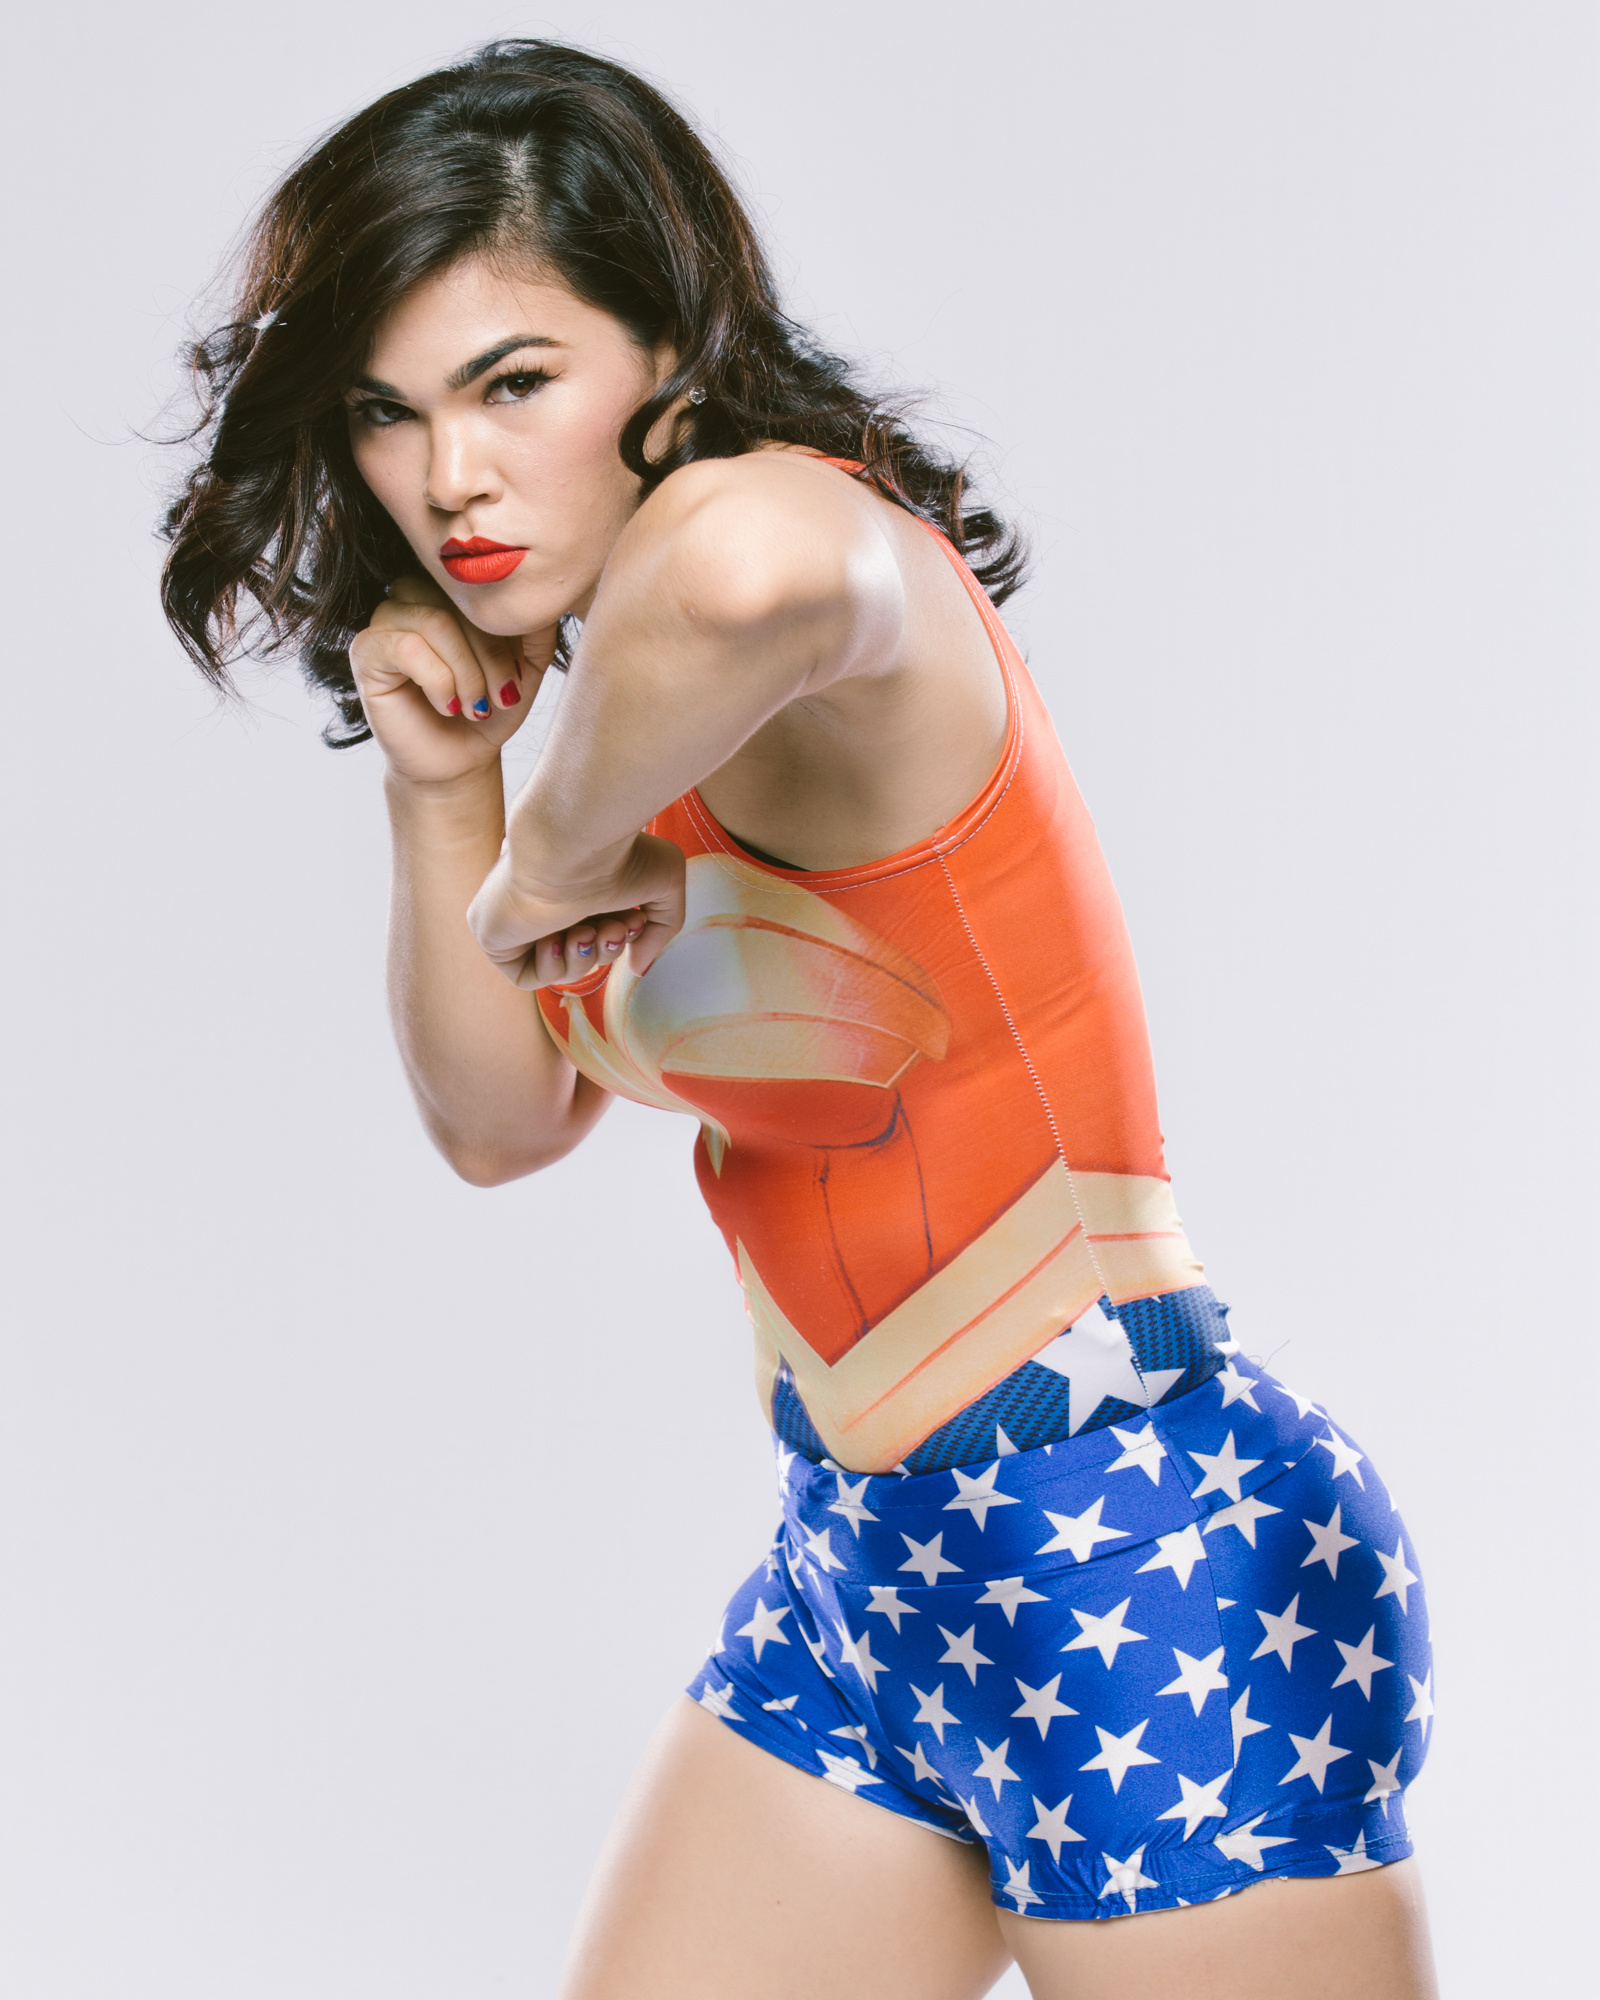 Image result for rachael ostovich